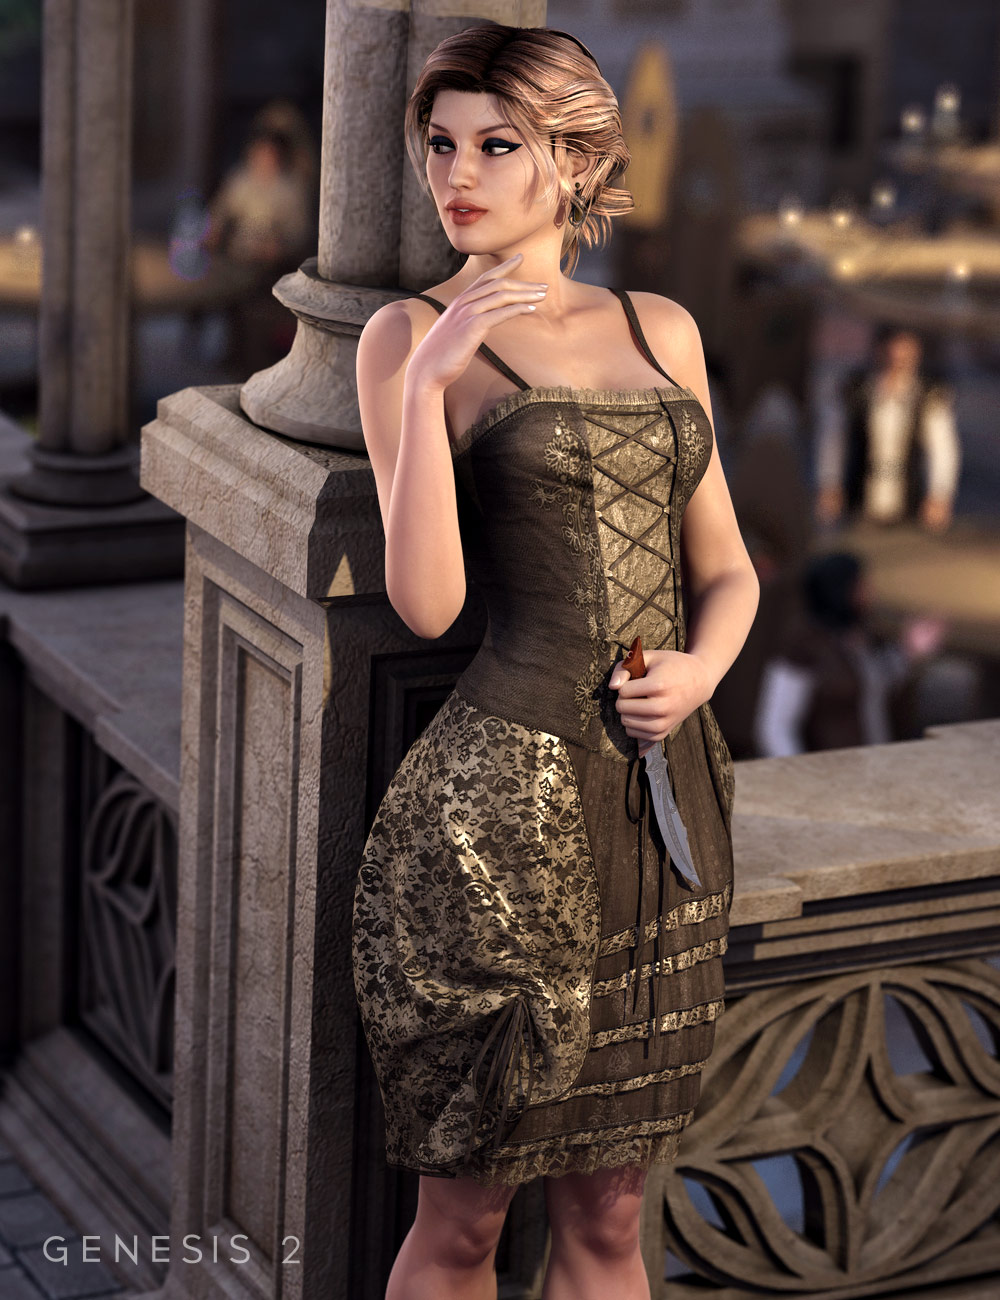 Francesca Dress for Genesis 2 Female(s) by: MadaSarsa, 3D Models by Daz 3D